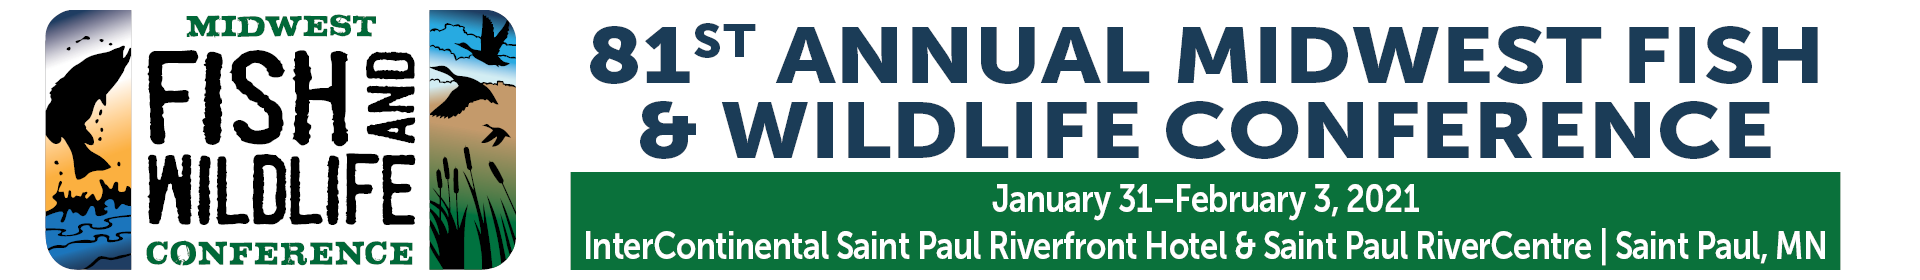 81st Annual Midwest Fish & Wildlife Conference Event Banner